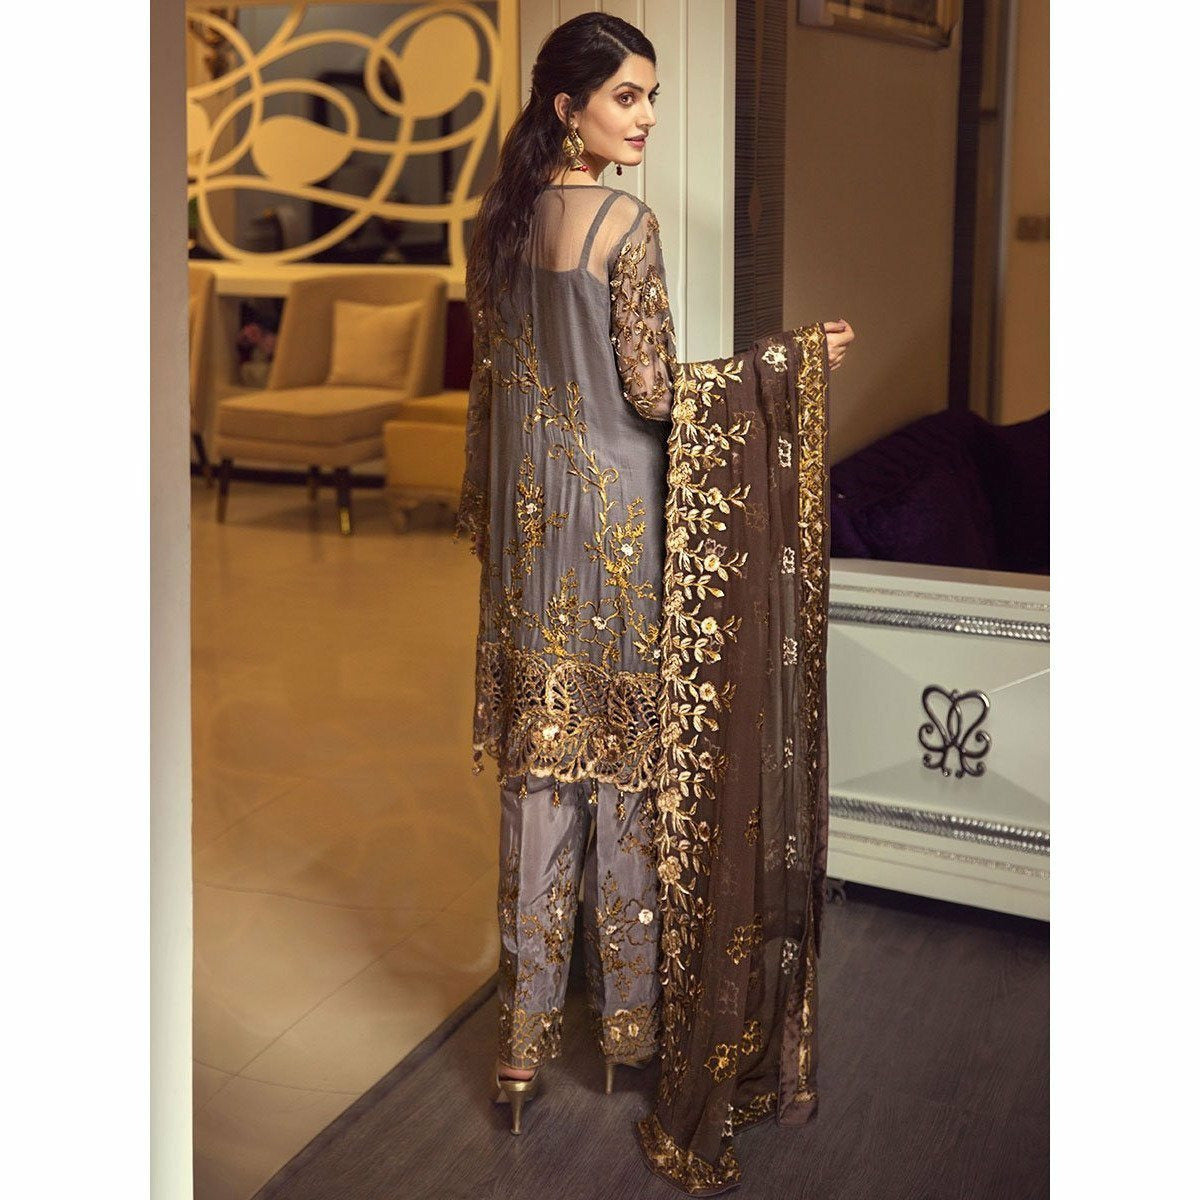 designer womens clothing, pakistani wedding dresses, pakistani clothes, formal dresses for women,